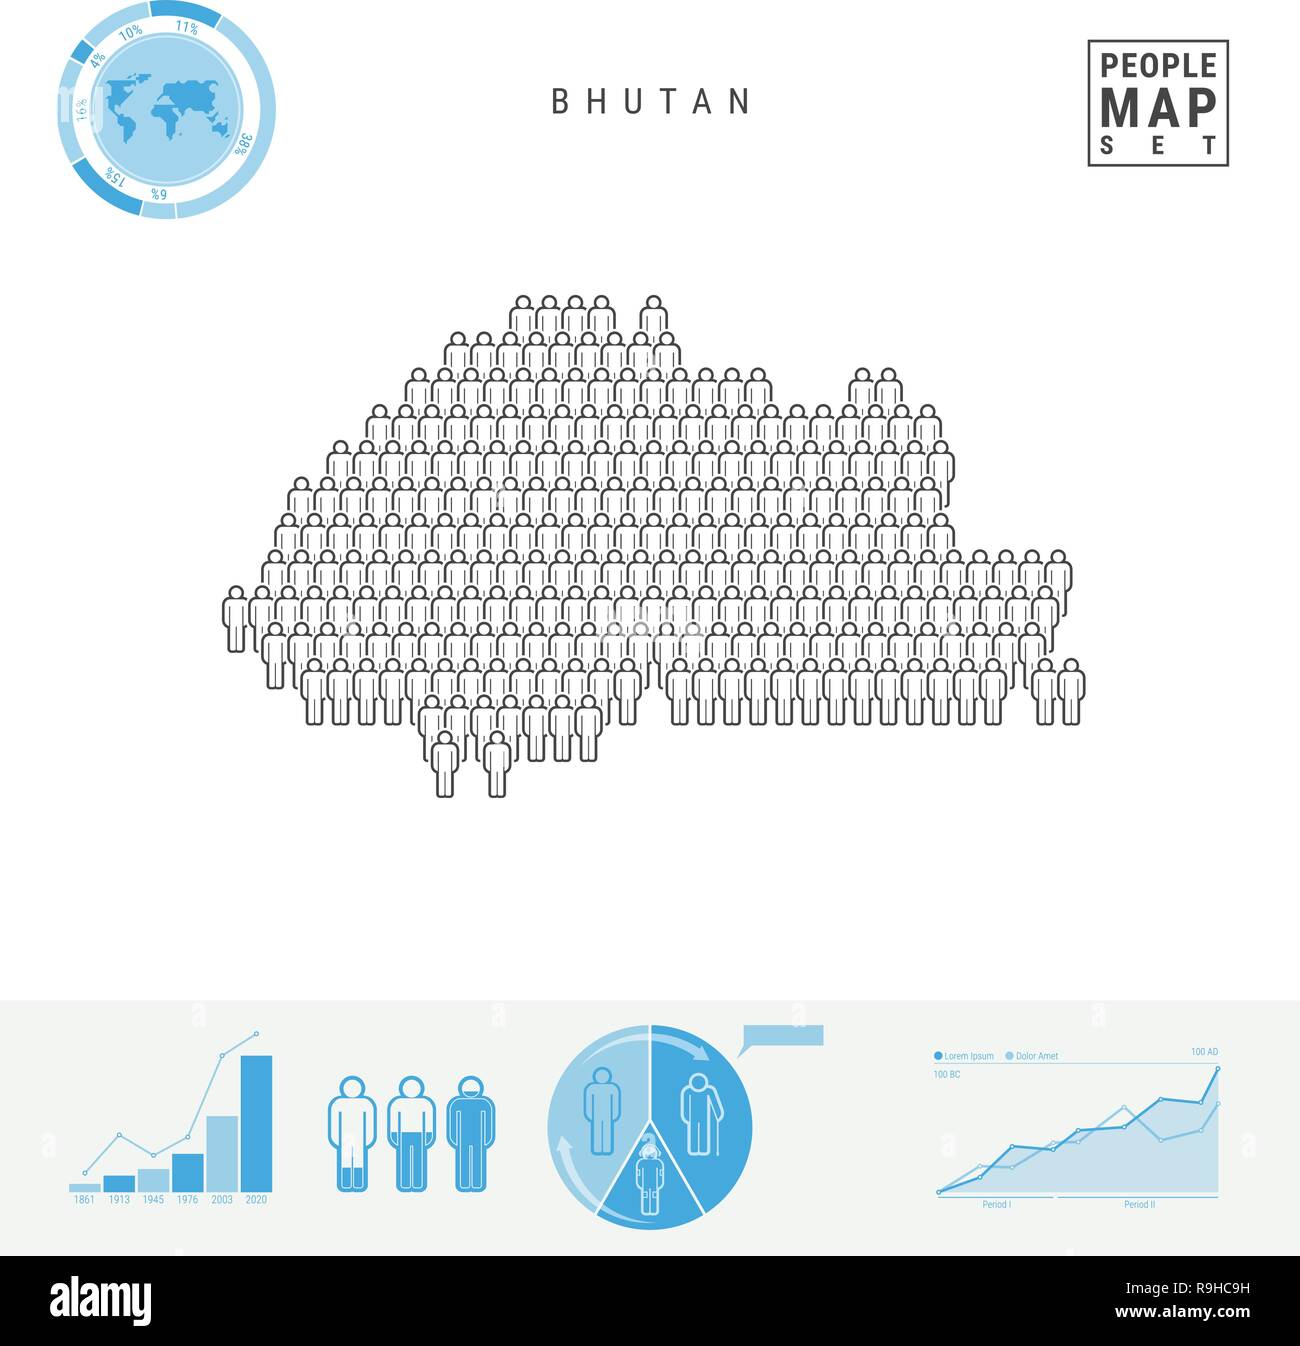 Bhutan People Icon Map. People Crowd in the Shape of a Map of Bhutan. Stylized Silhouette of Bhutan. Population Growth and Aging Infographic Elements. - Stock Vector